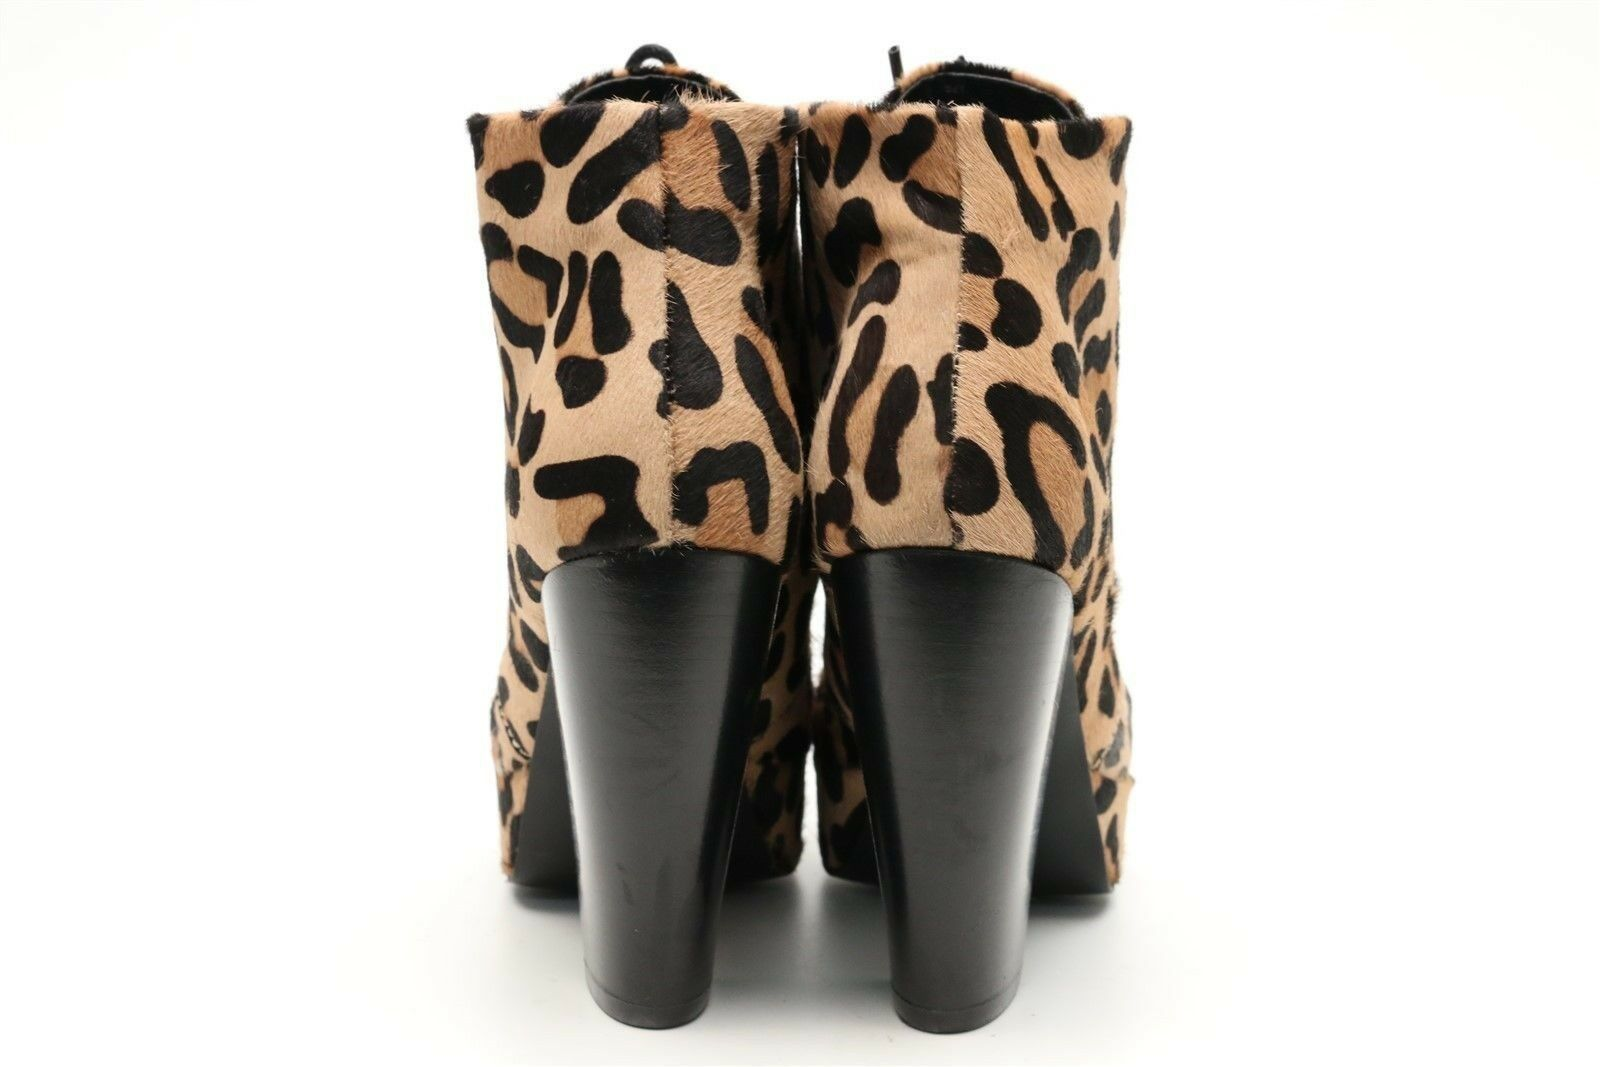 Womens STEVE MADDEN leopard print pony hair ankle ankle ankle booties sz. 6.5 NEW   160 e36356